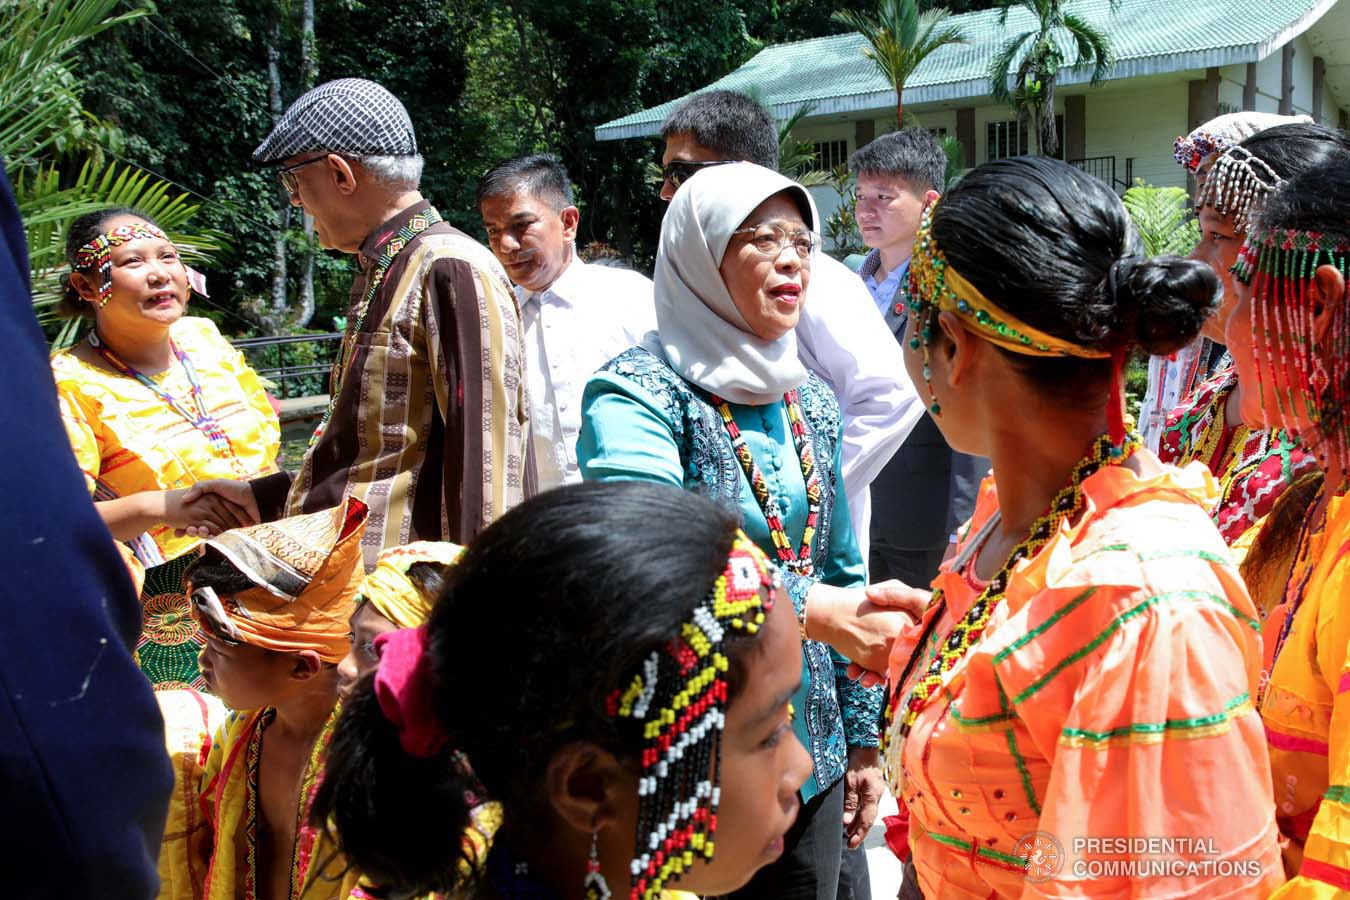 Republic of Singapore President Halimah Yacob greets the cultural performers who entertained her during her visit to the Philippine Eagle Center in Davao City on September 11, 2019. ROBINSON NIÑAL JR./PRESIDENTIAL PHOTO